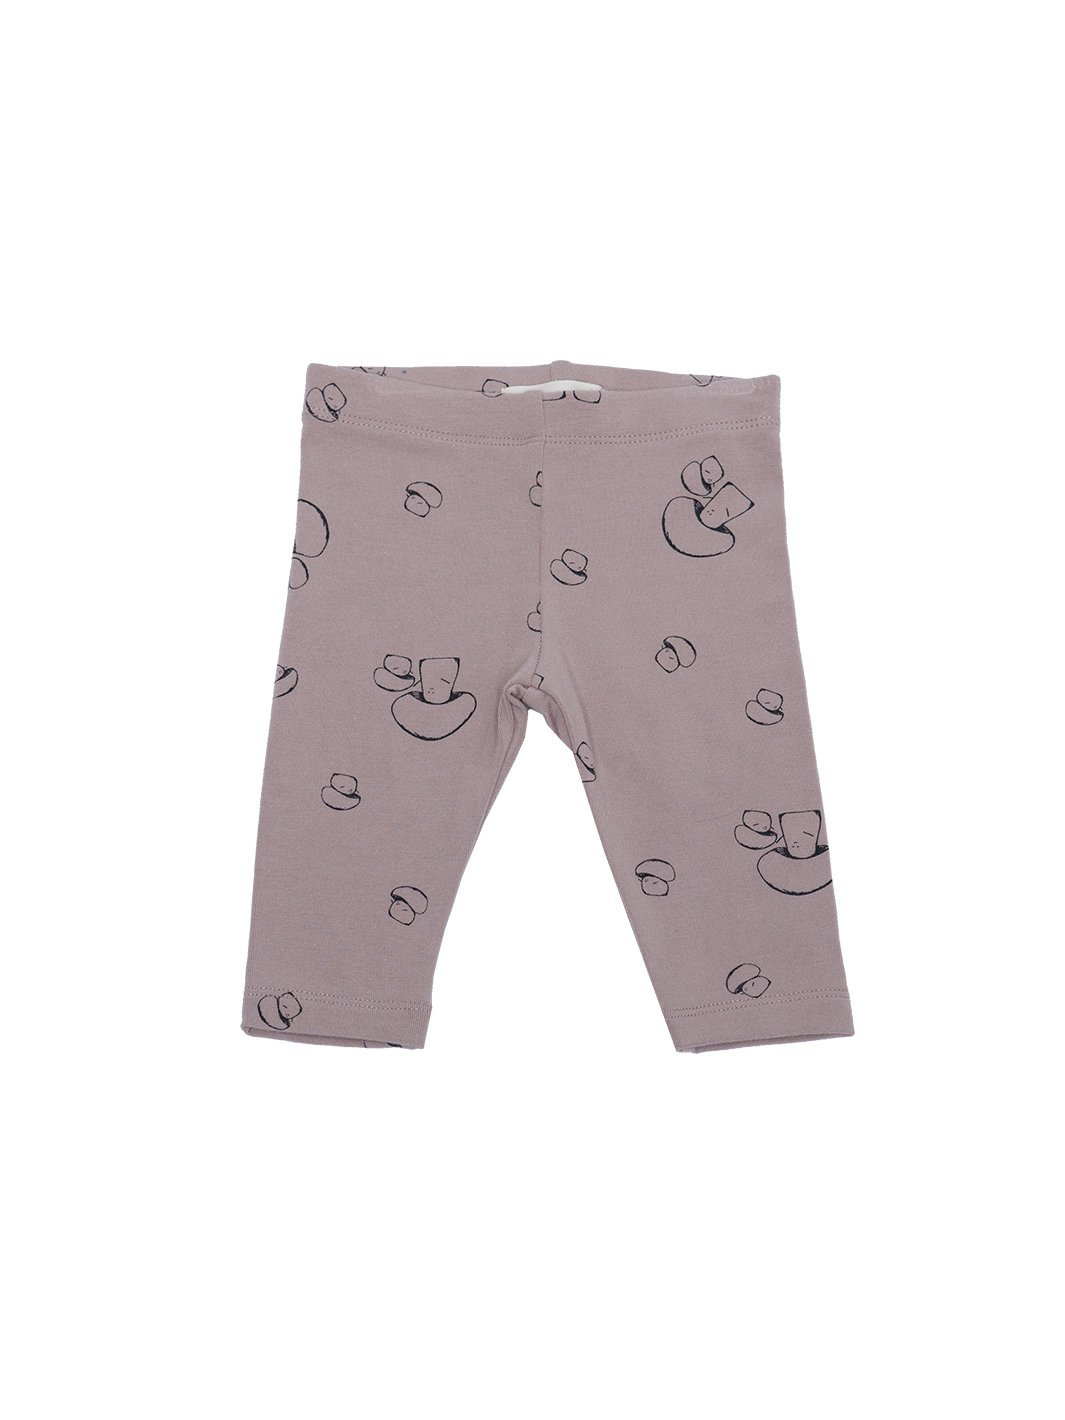 We Are The Champignons Leggings by Greige